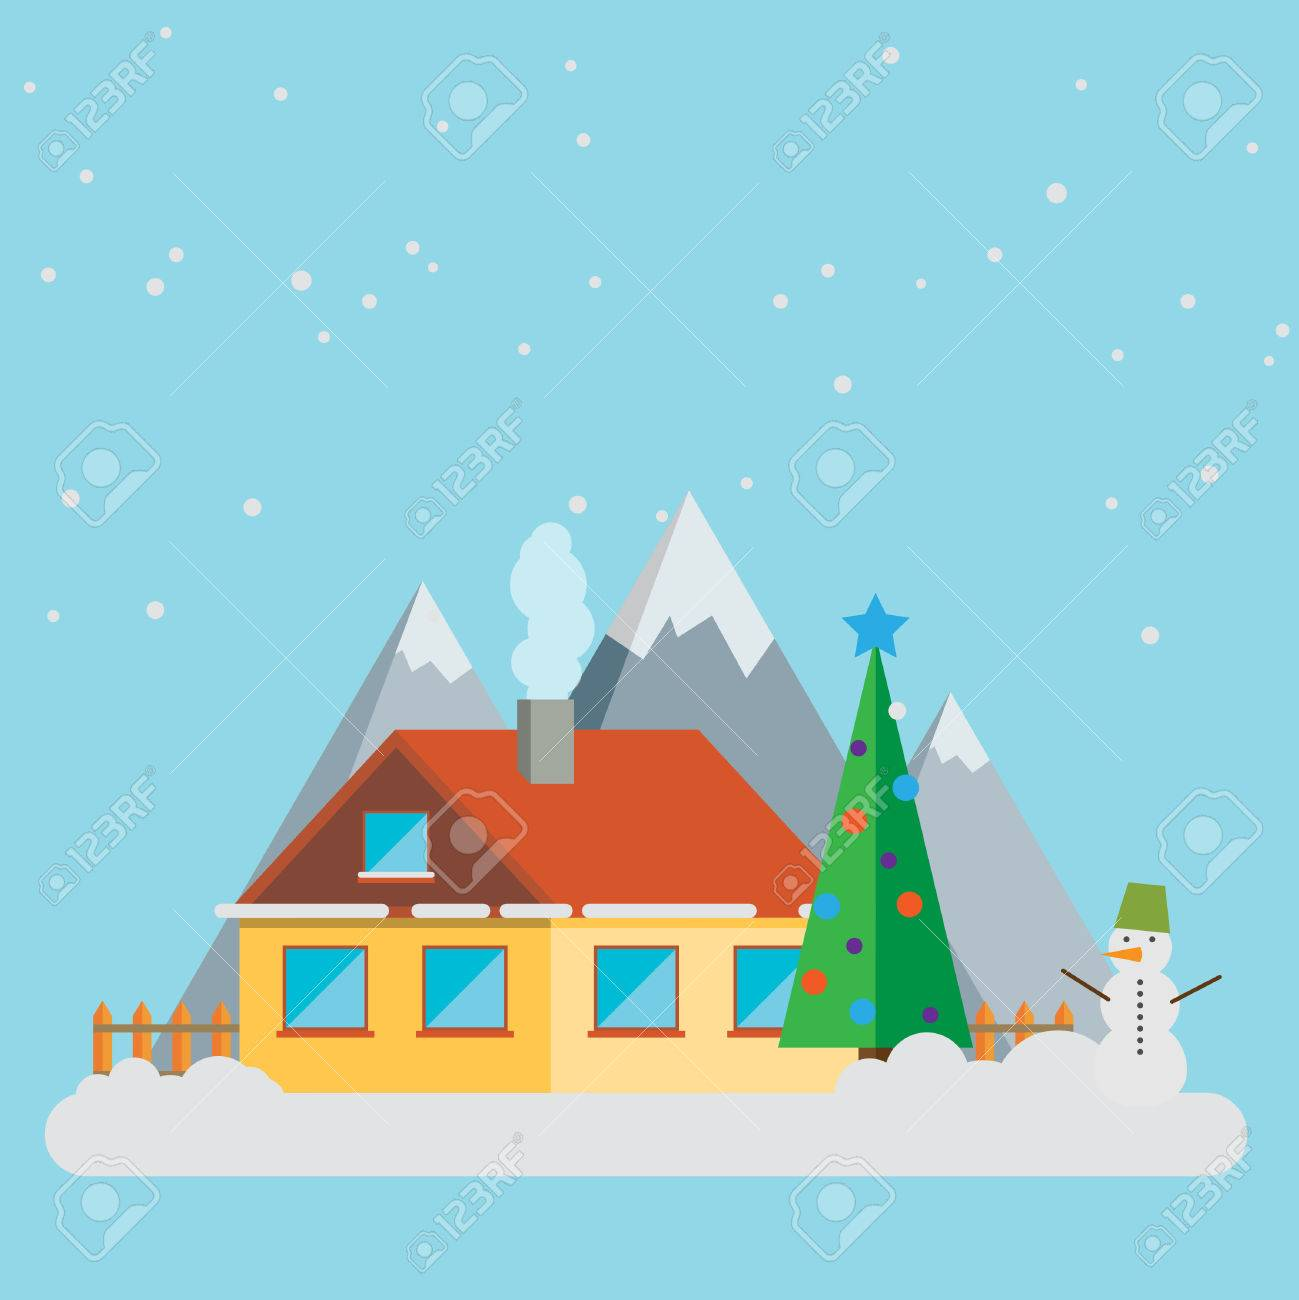 New year landscape christmas accessories icons greeting card new year landscape christmas accessories icons greeting card elements trendy modern flat design template vector illustration kristyandbryce Gallery